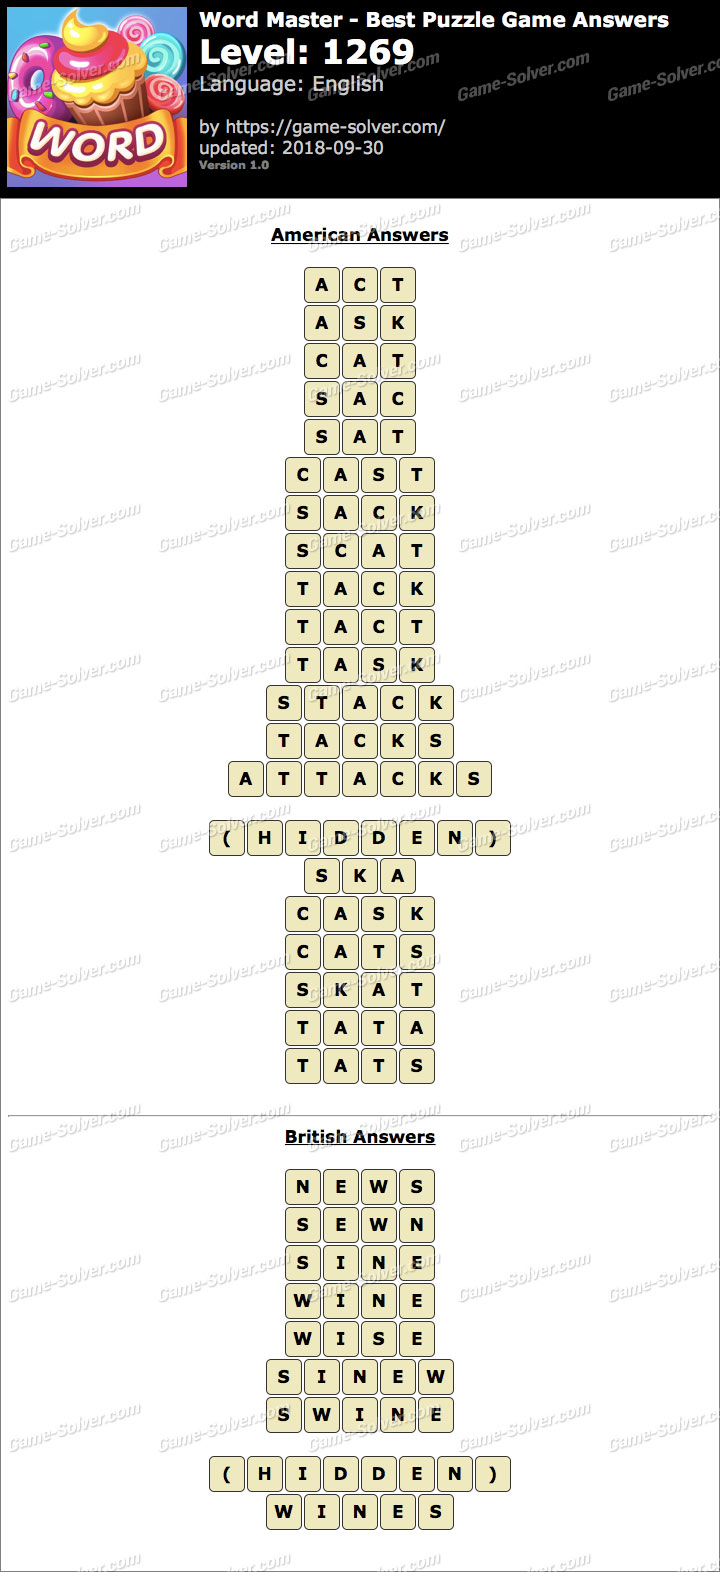 Word Master-Best Puzzle Game Level 1269 Answers